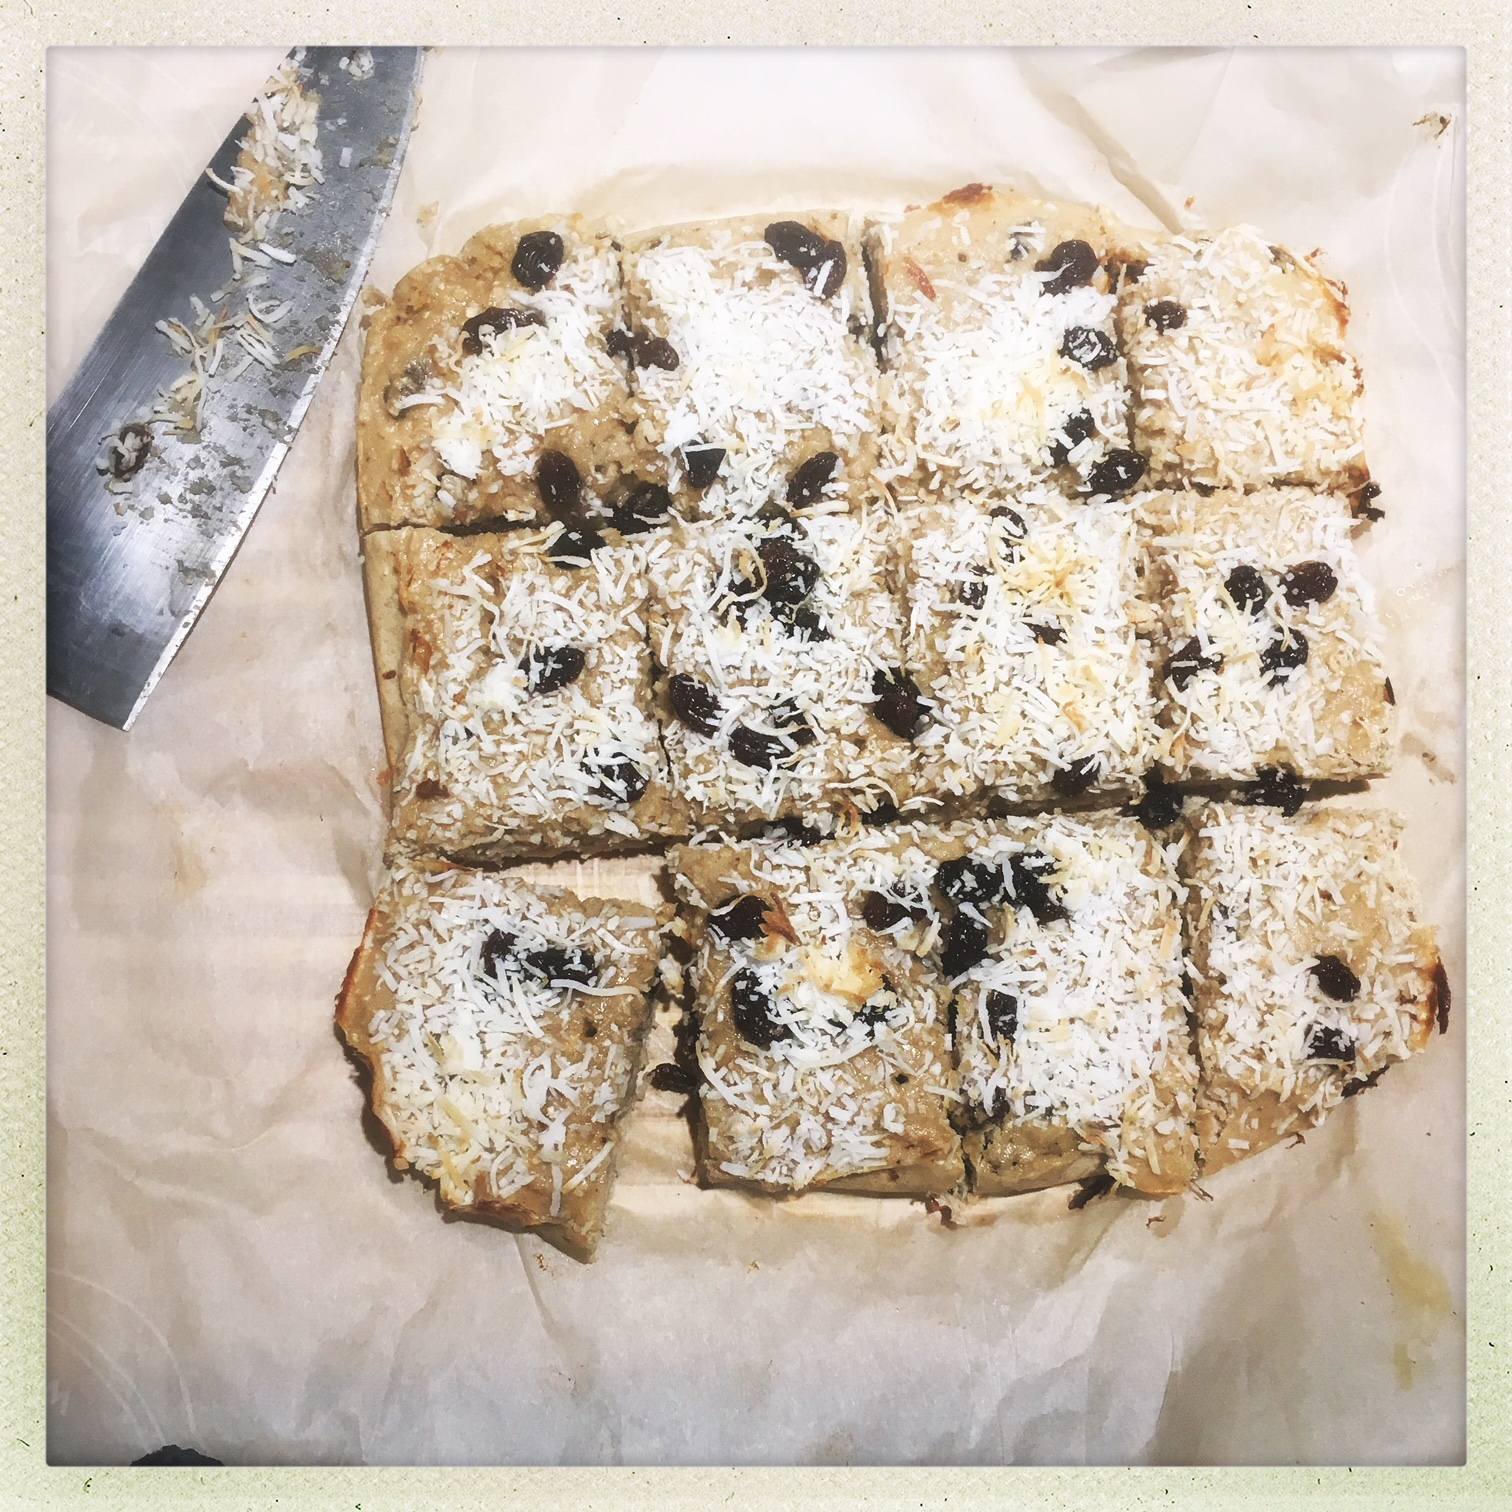 oatmeal raisin coconut bars 2.jpg